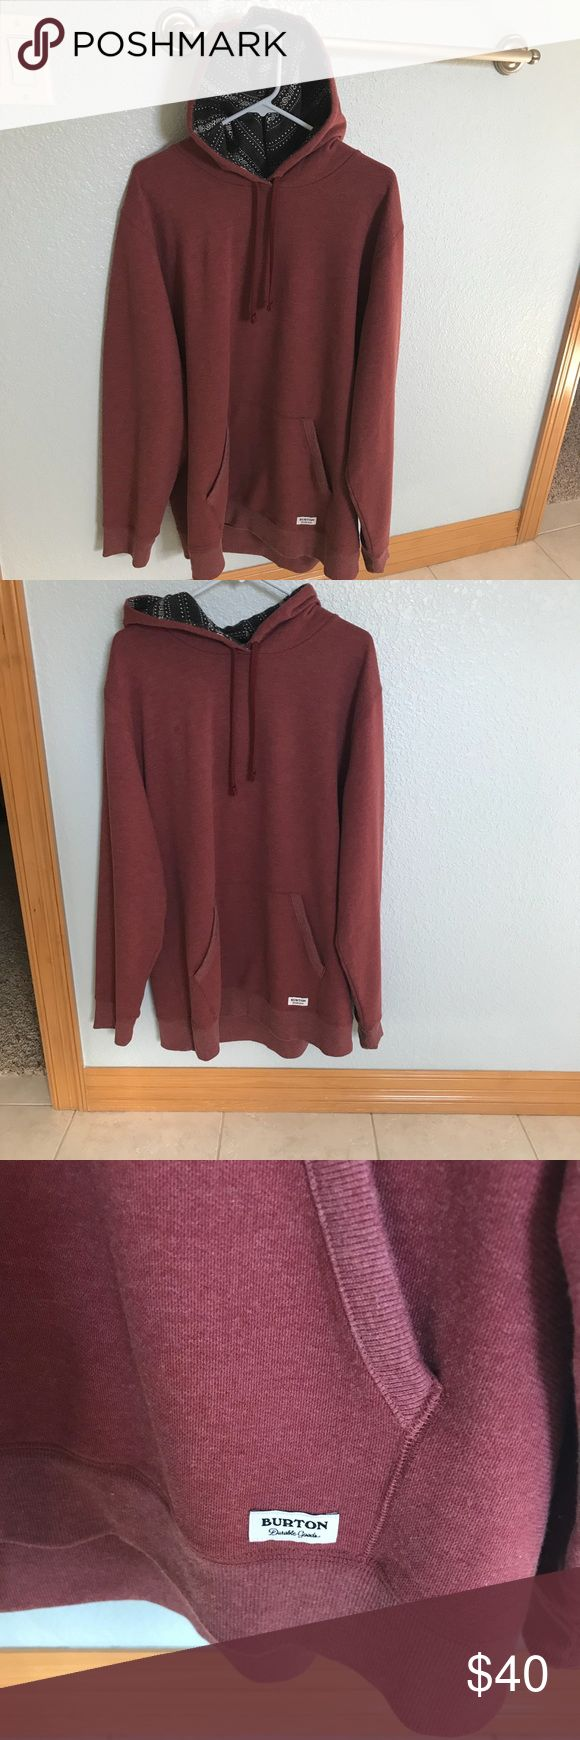 Men's Burton hoodie XL Men's hoodie xl. Only wore once. Fits a little big. A red rusty color. Thank you for your interest! Burton Shirts Sweatshirts & Hoodies